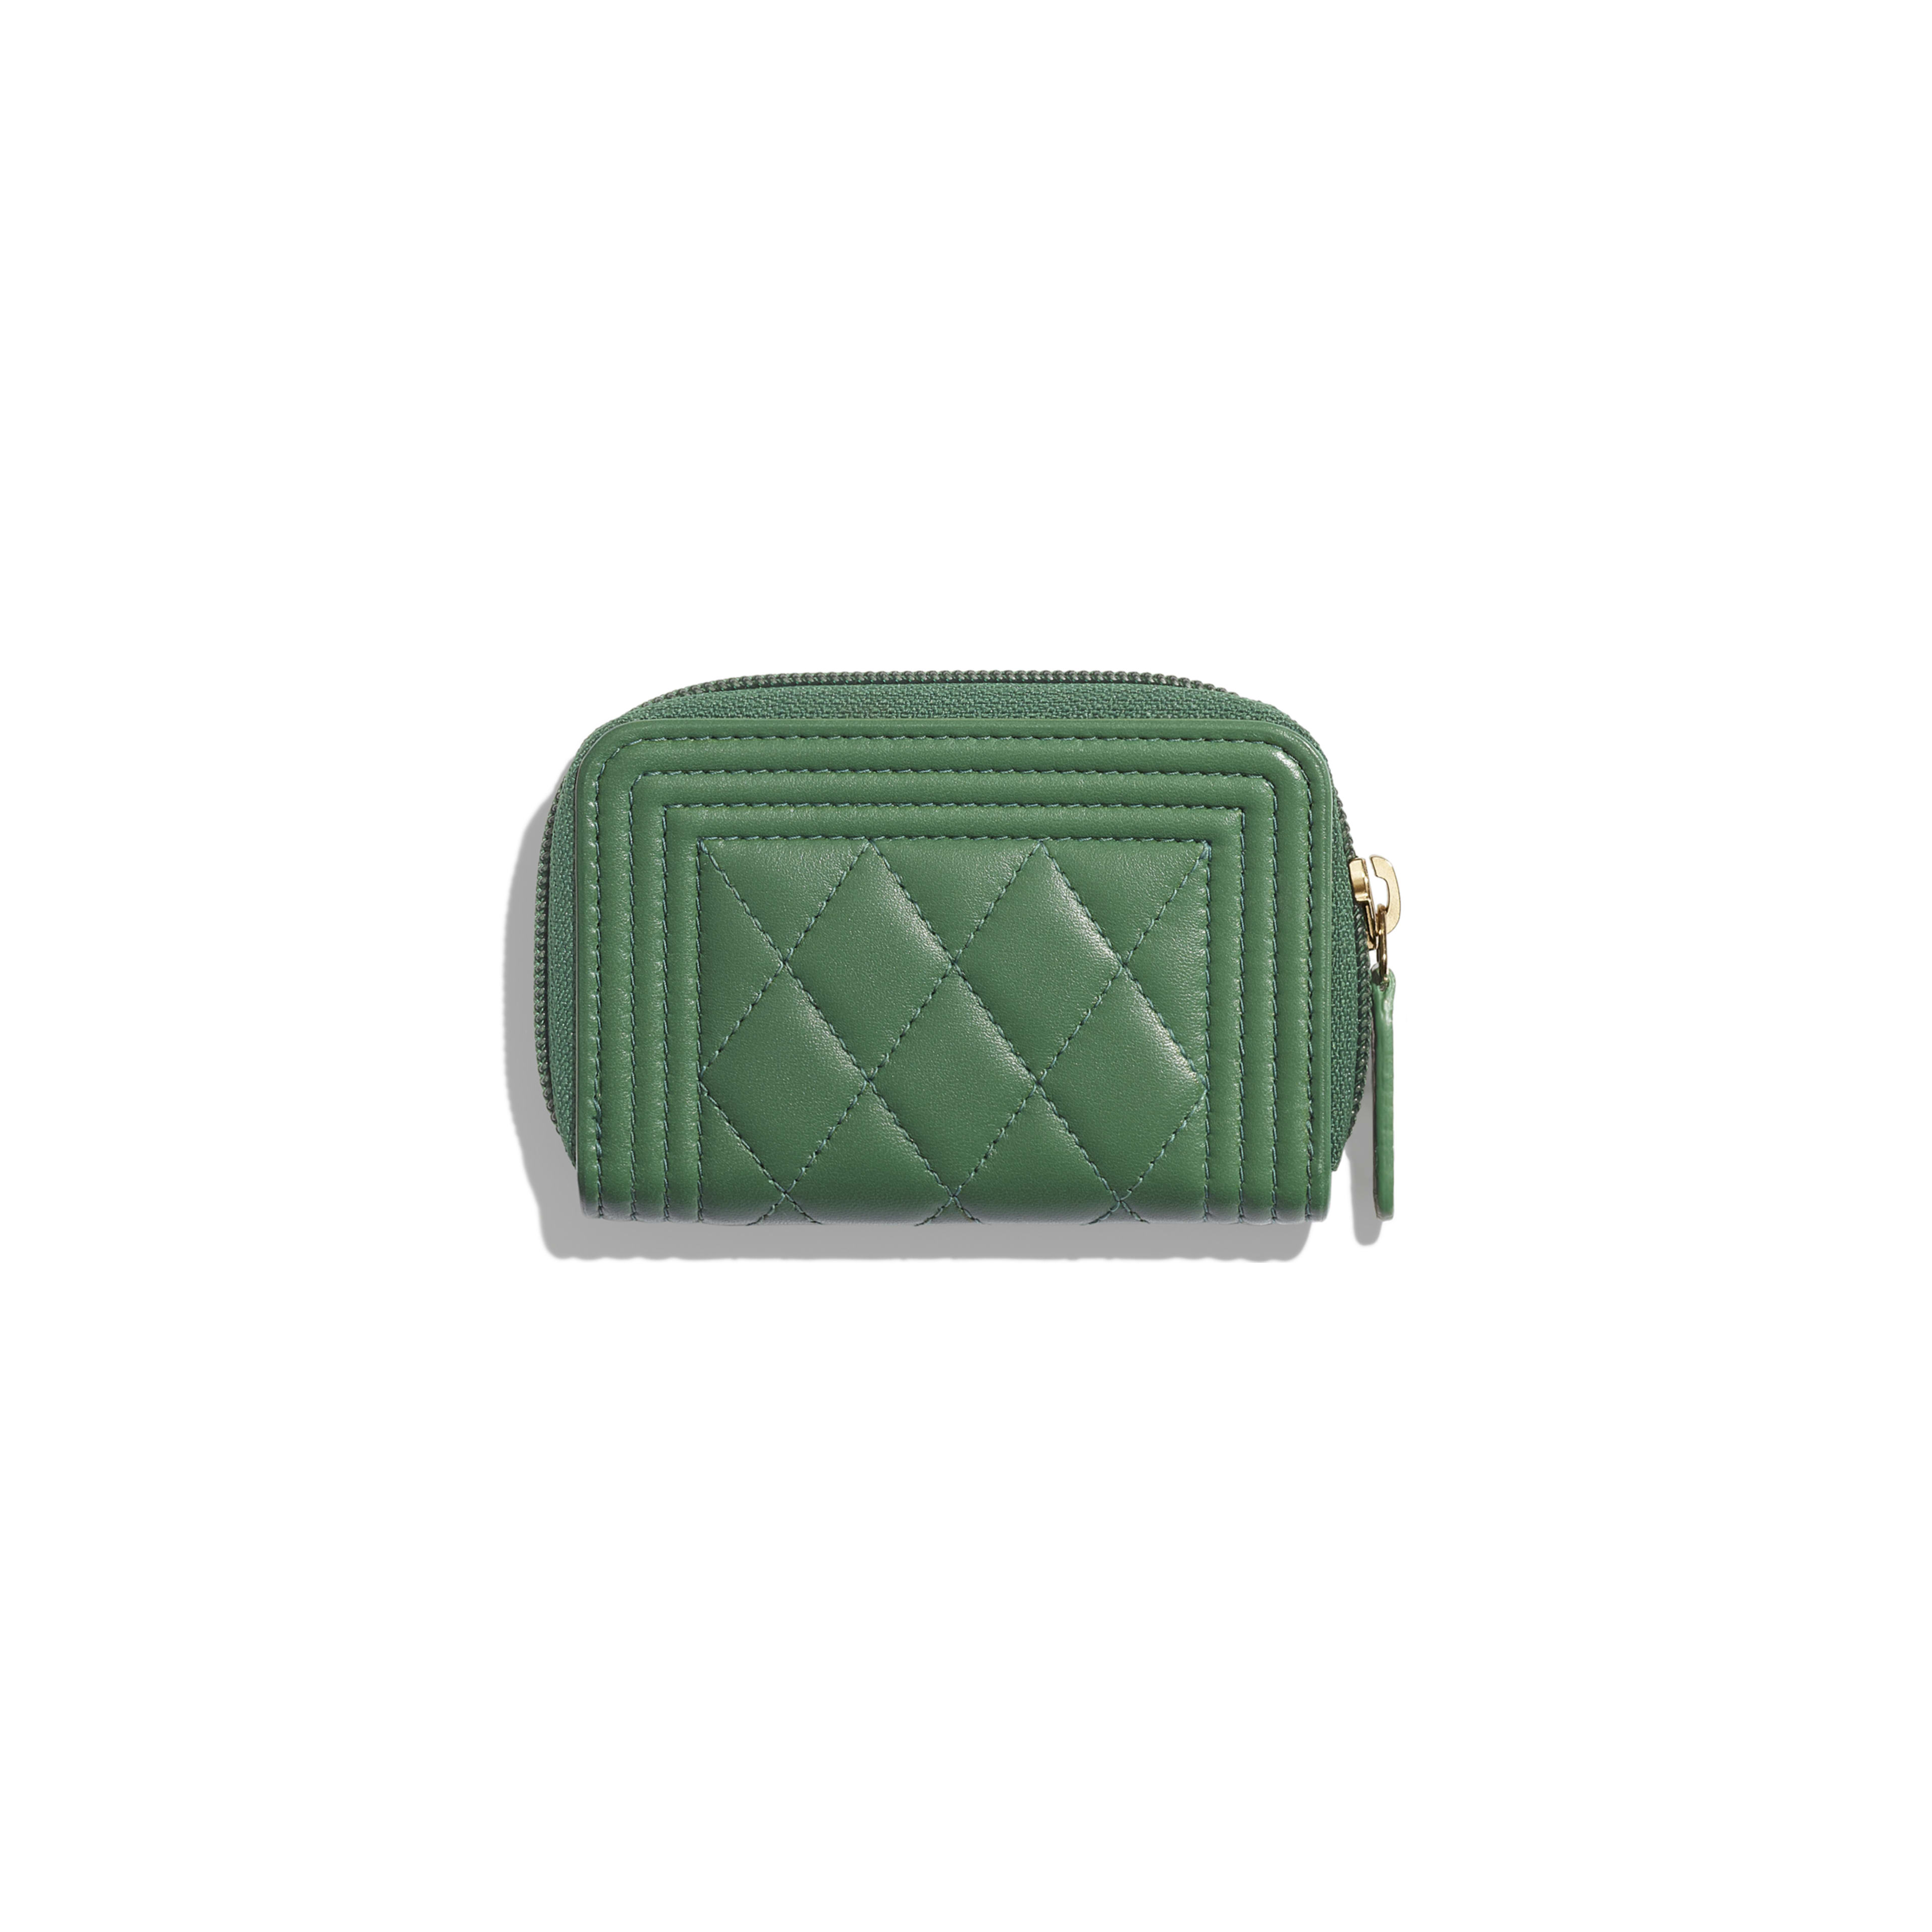 unbeatable price full range of specifications best collection Lambskin & Gold-Tone Metal Green BOY CHANEL Zipped Coin Purse | CHANEL